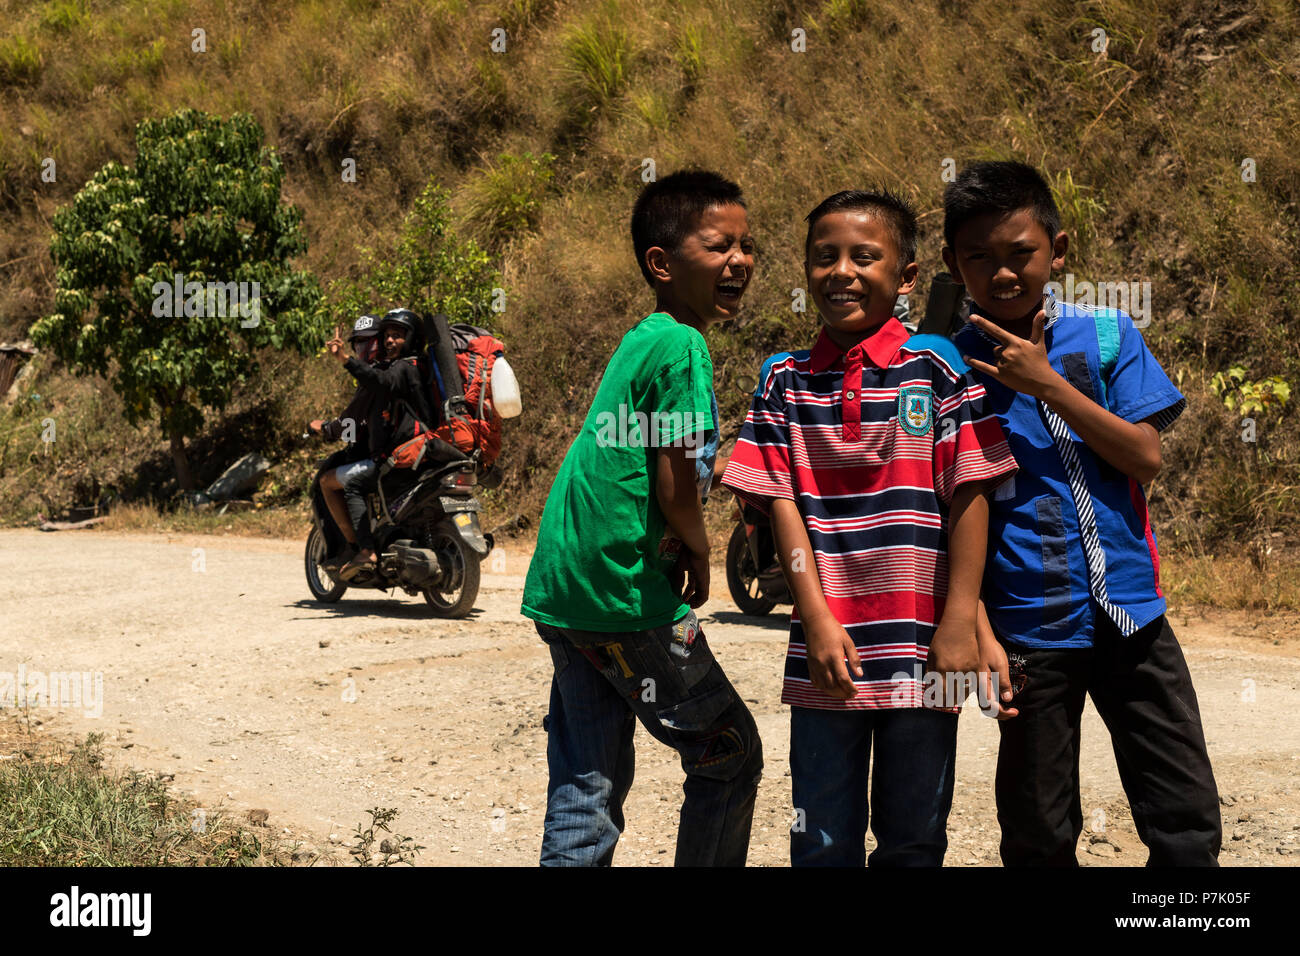 Three boys having fun being photographed - Stock Image